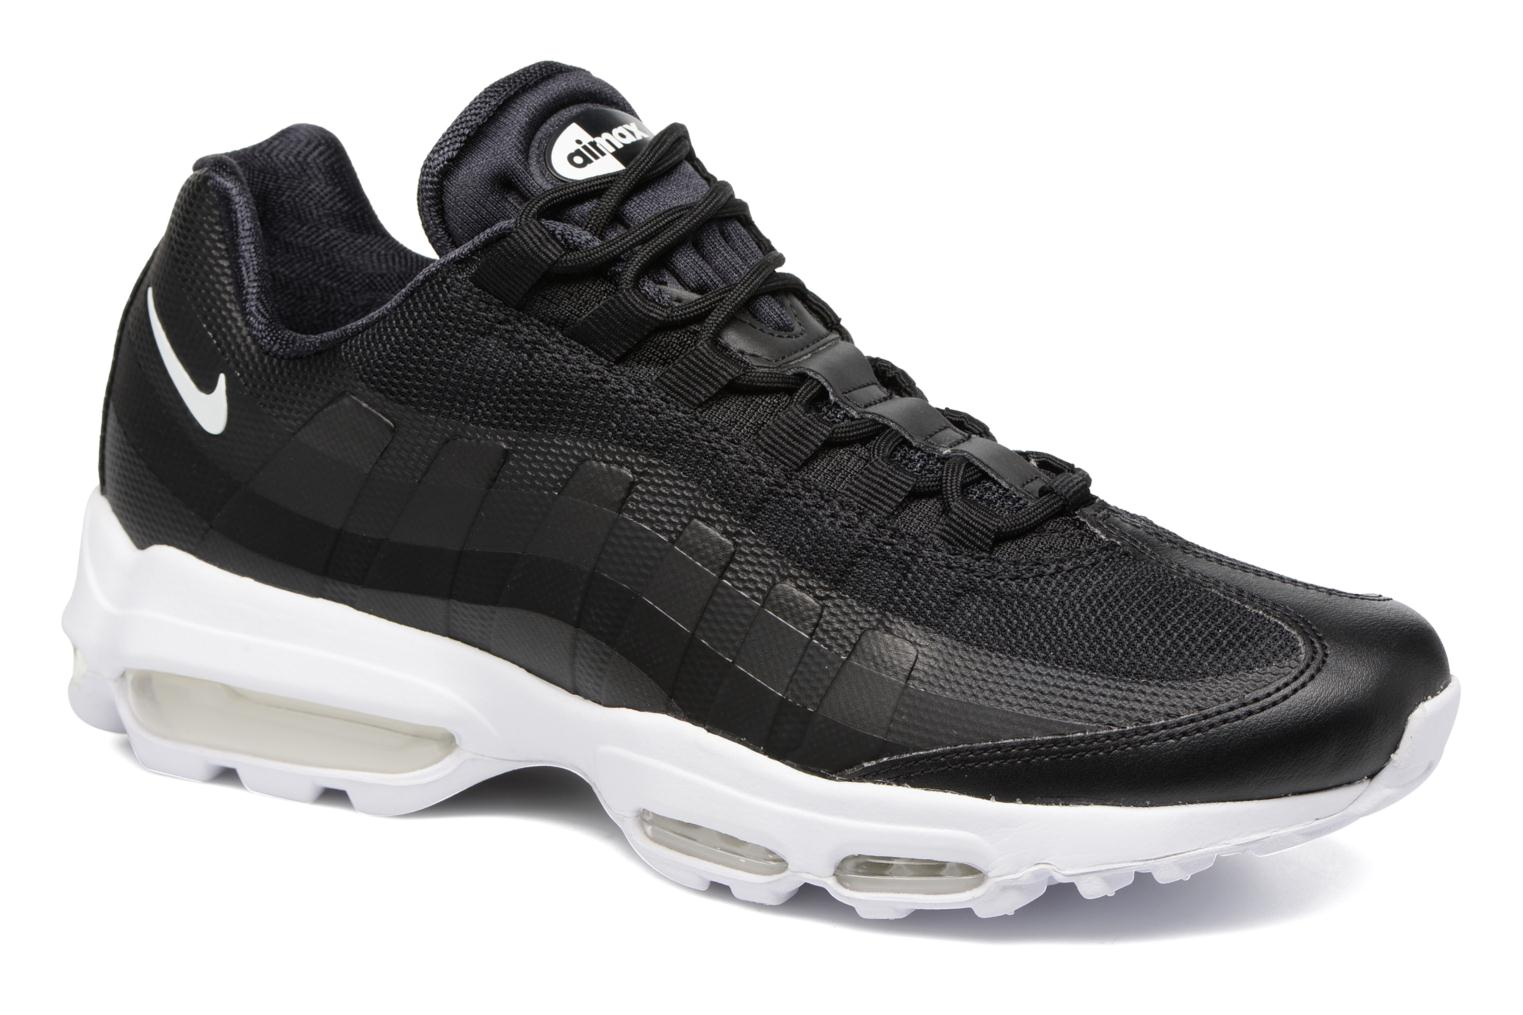 Air Max 95 Ultra Essential Black/White-White